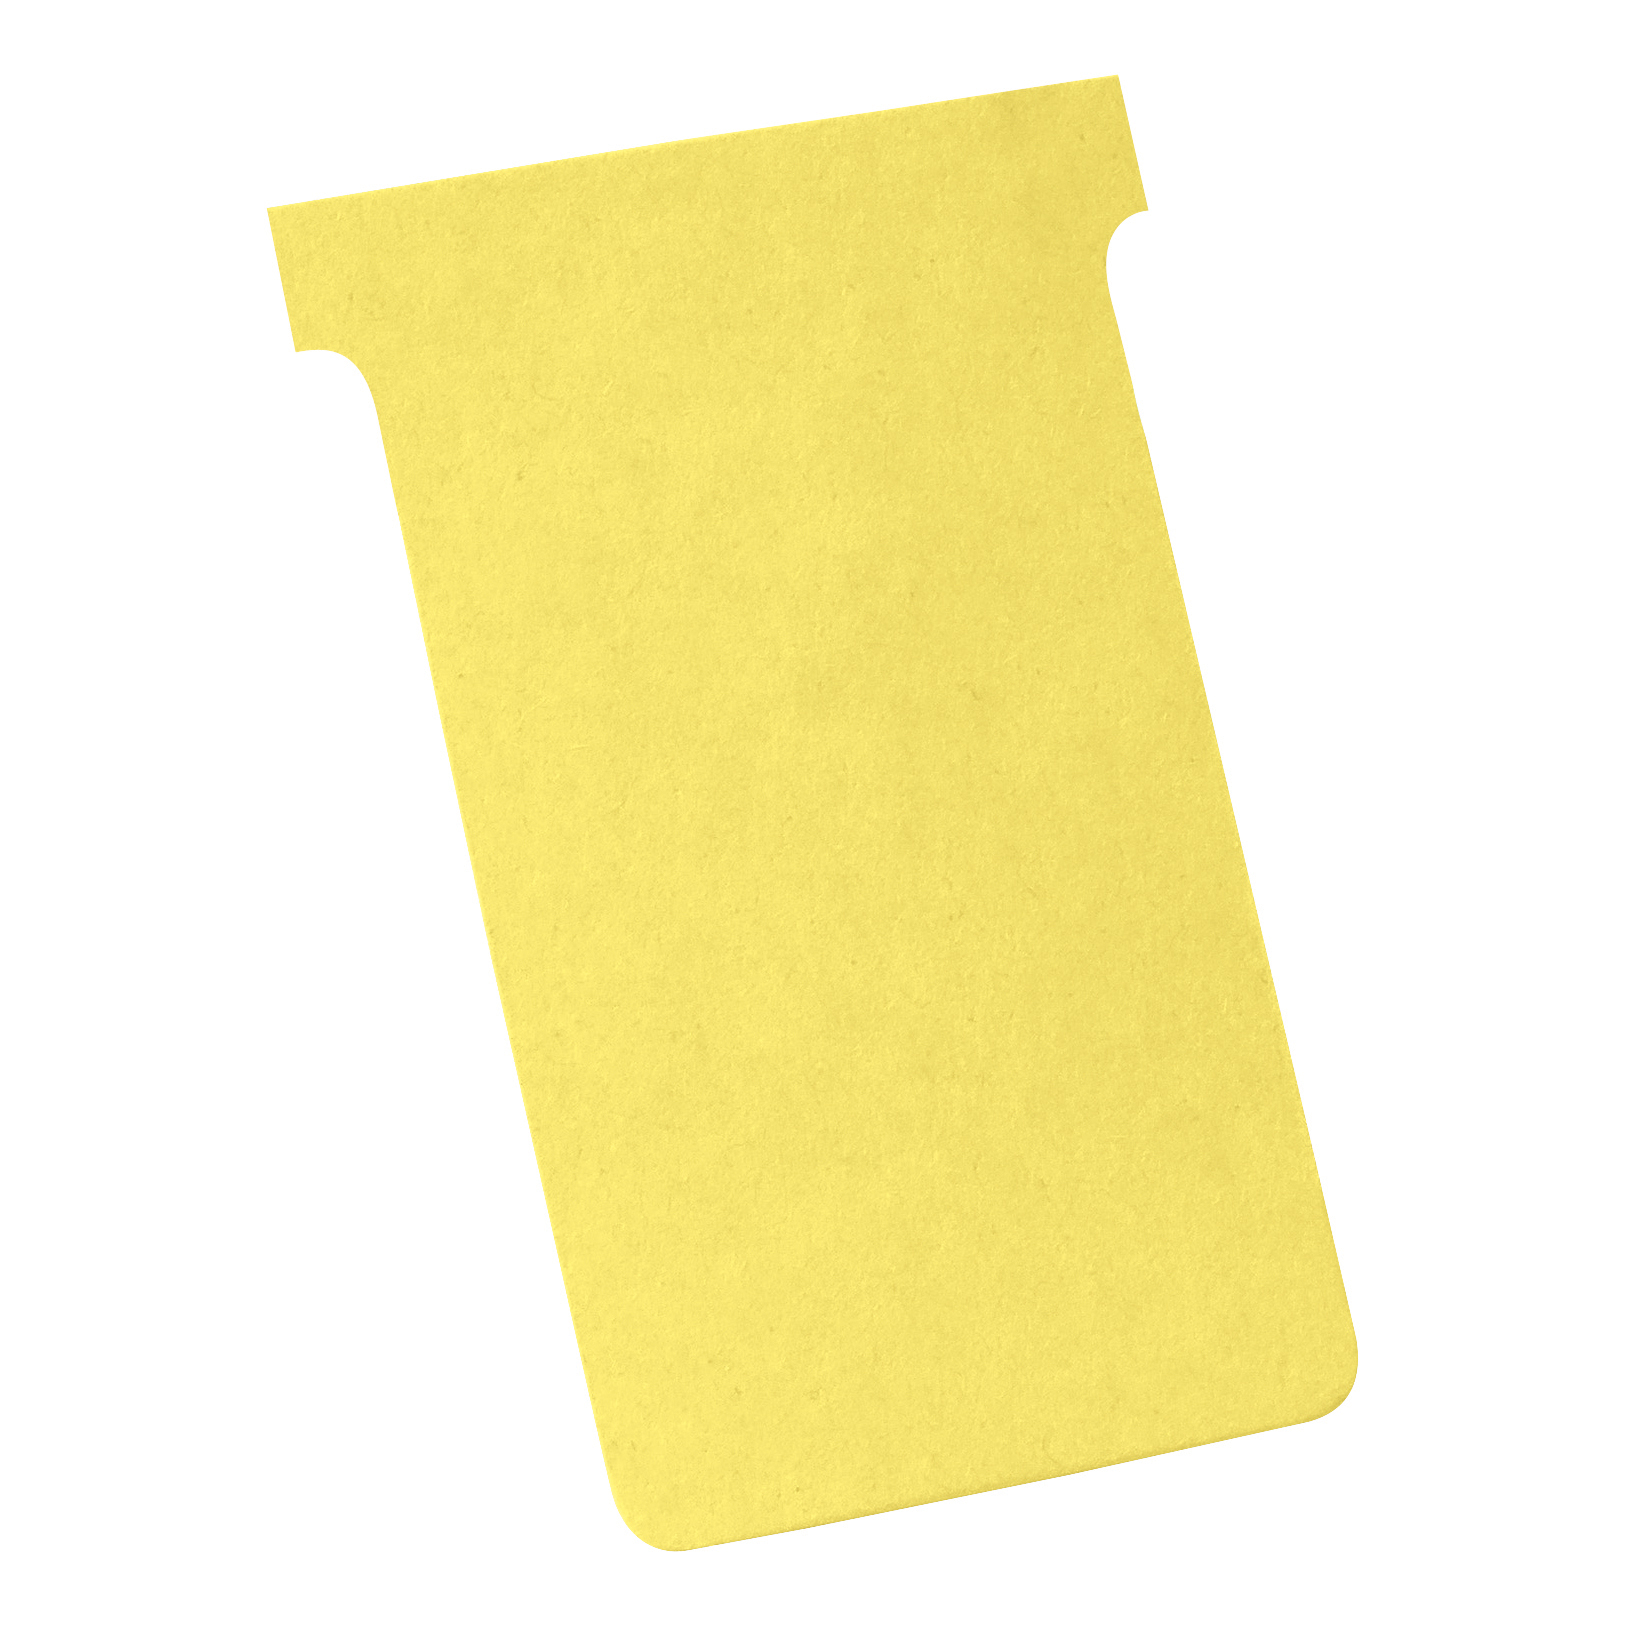 Nobo T-Cards 160gsm Tab Top 15mm W123x Bottom W112x Full H178mm Size 4 Yellow Ref 2004004 Pack 100